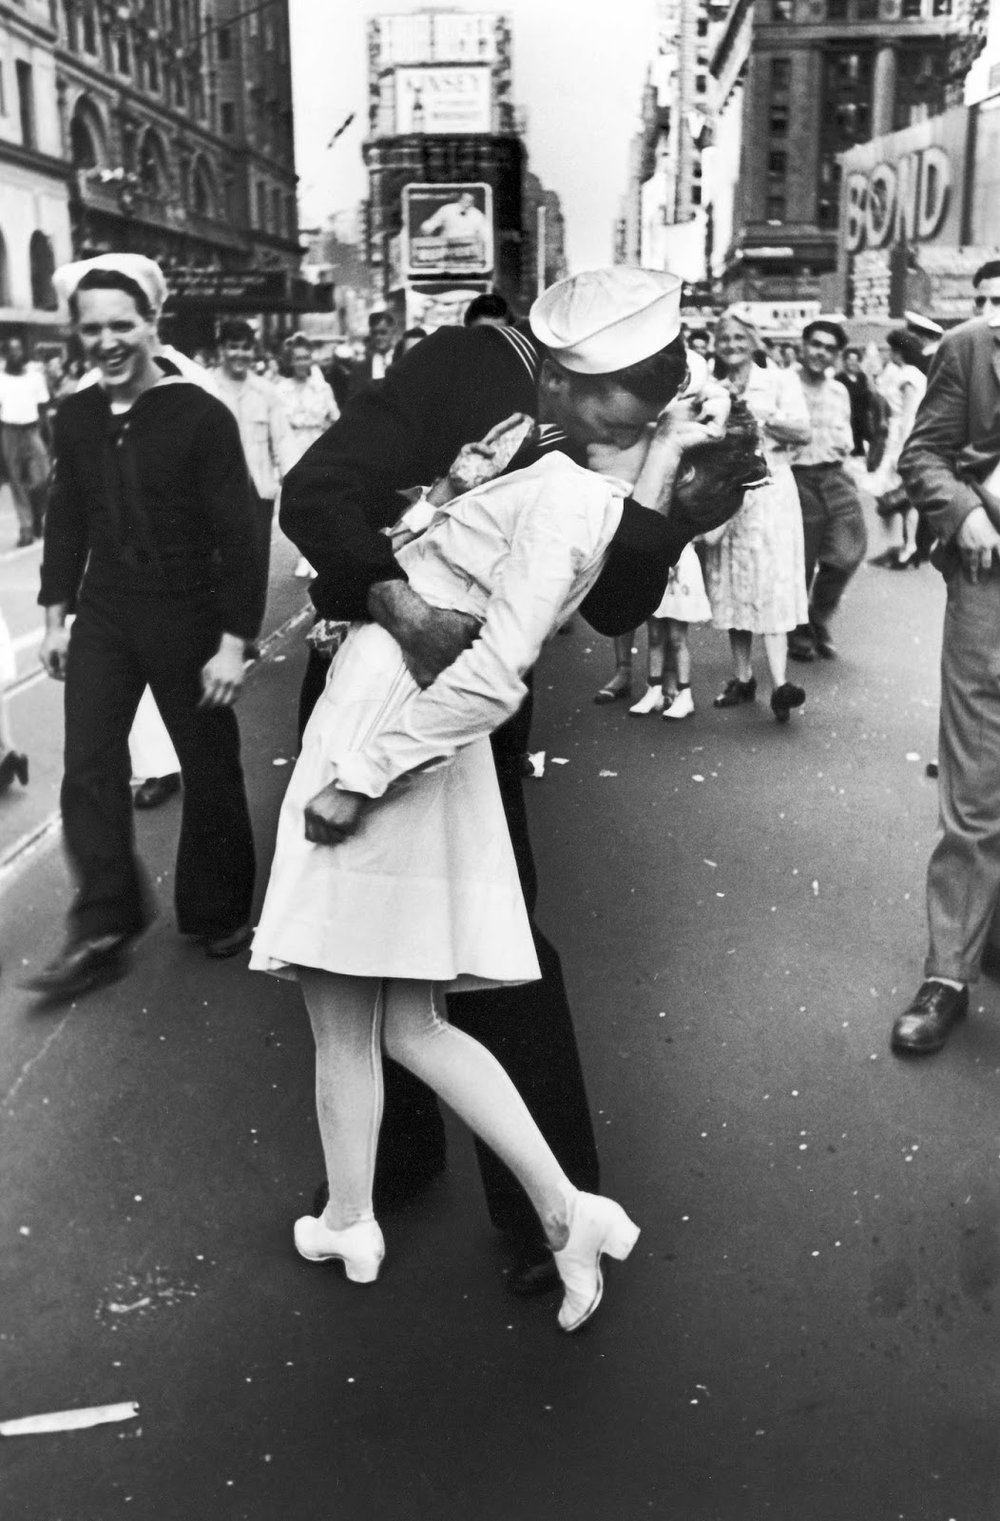 Credit: https://rarehistoricalphotos.com/v-j-day-kiss-times-square-1945/